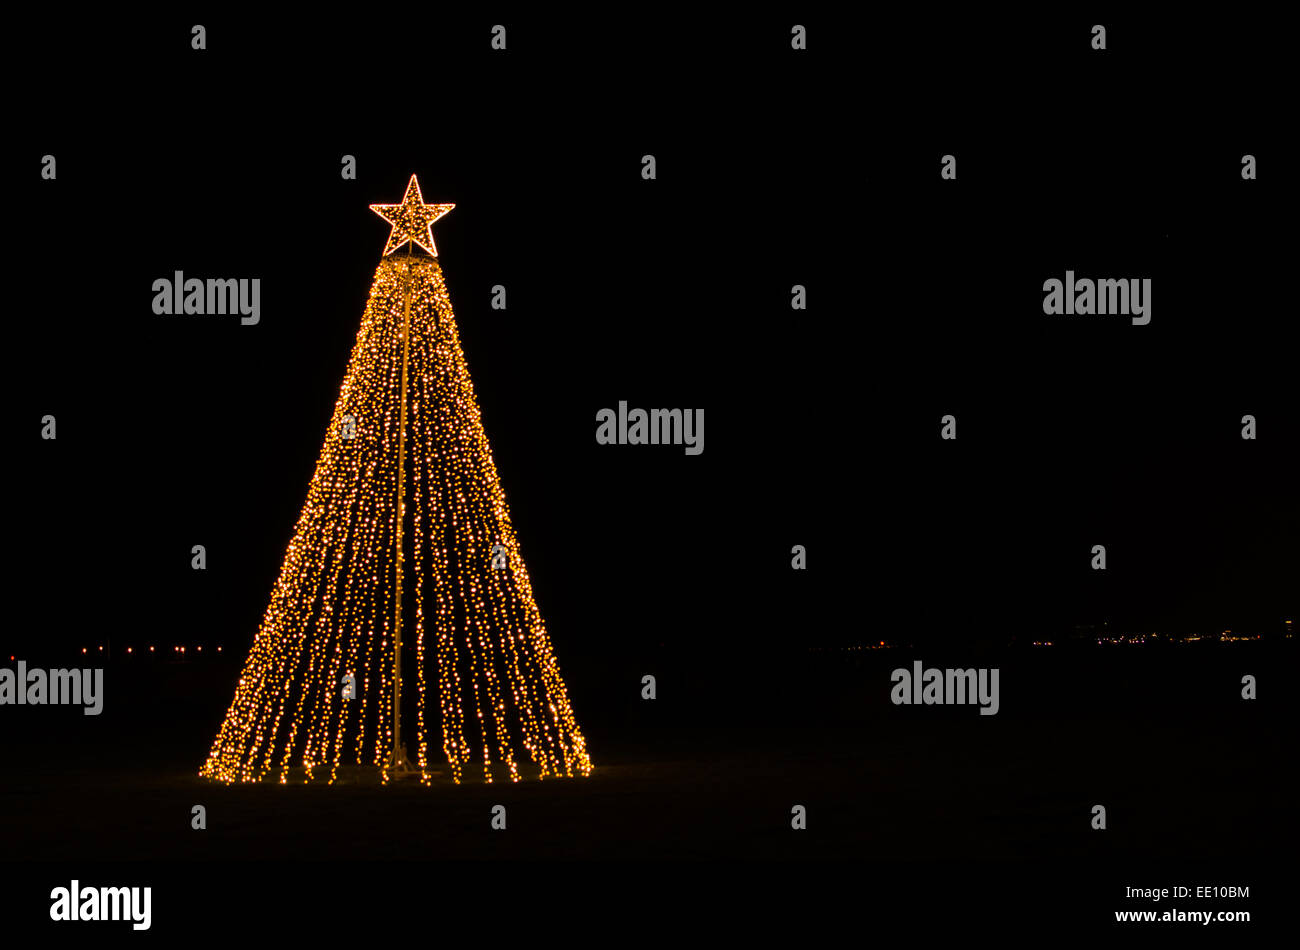 outdoor christmas illumination in form of a christmas tree with a star on top - Outdoor Christmas Trees